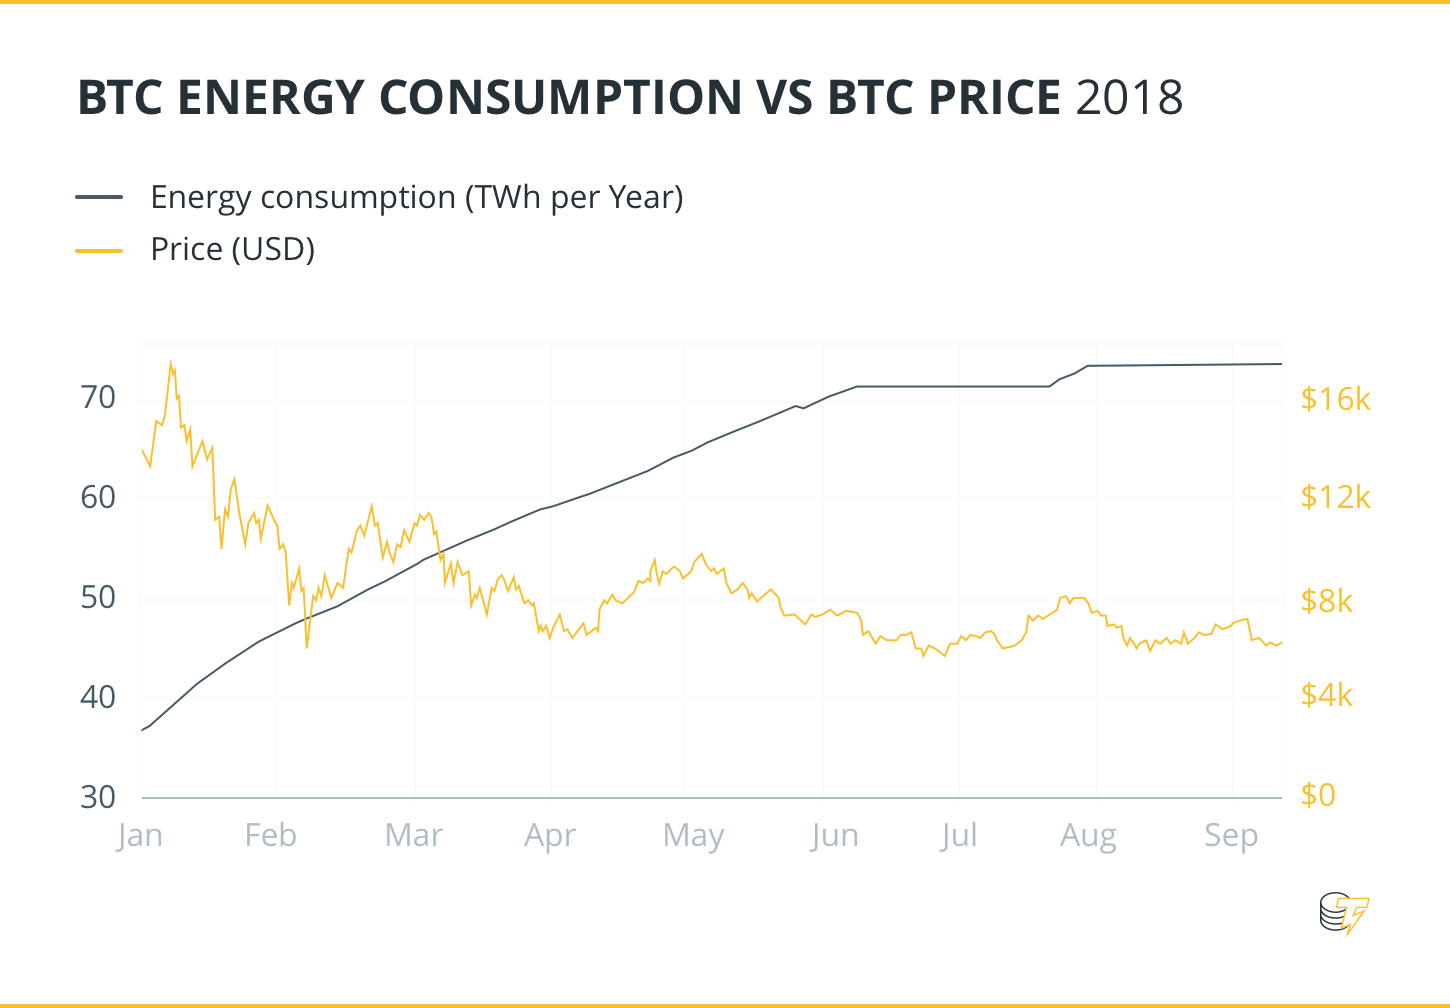 BTC Energy Consumption VS BTC Price 2018